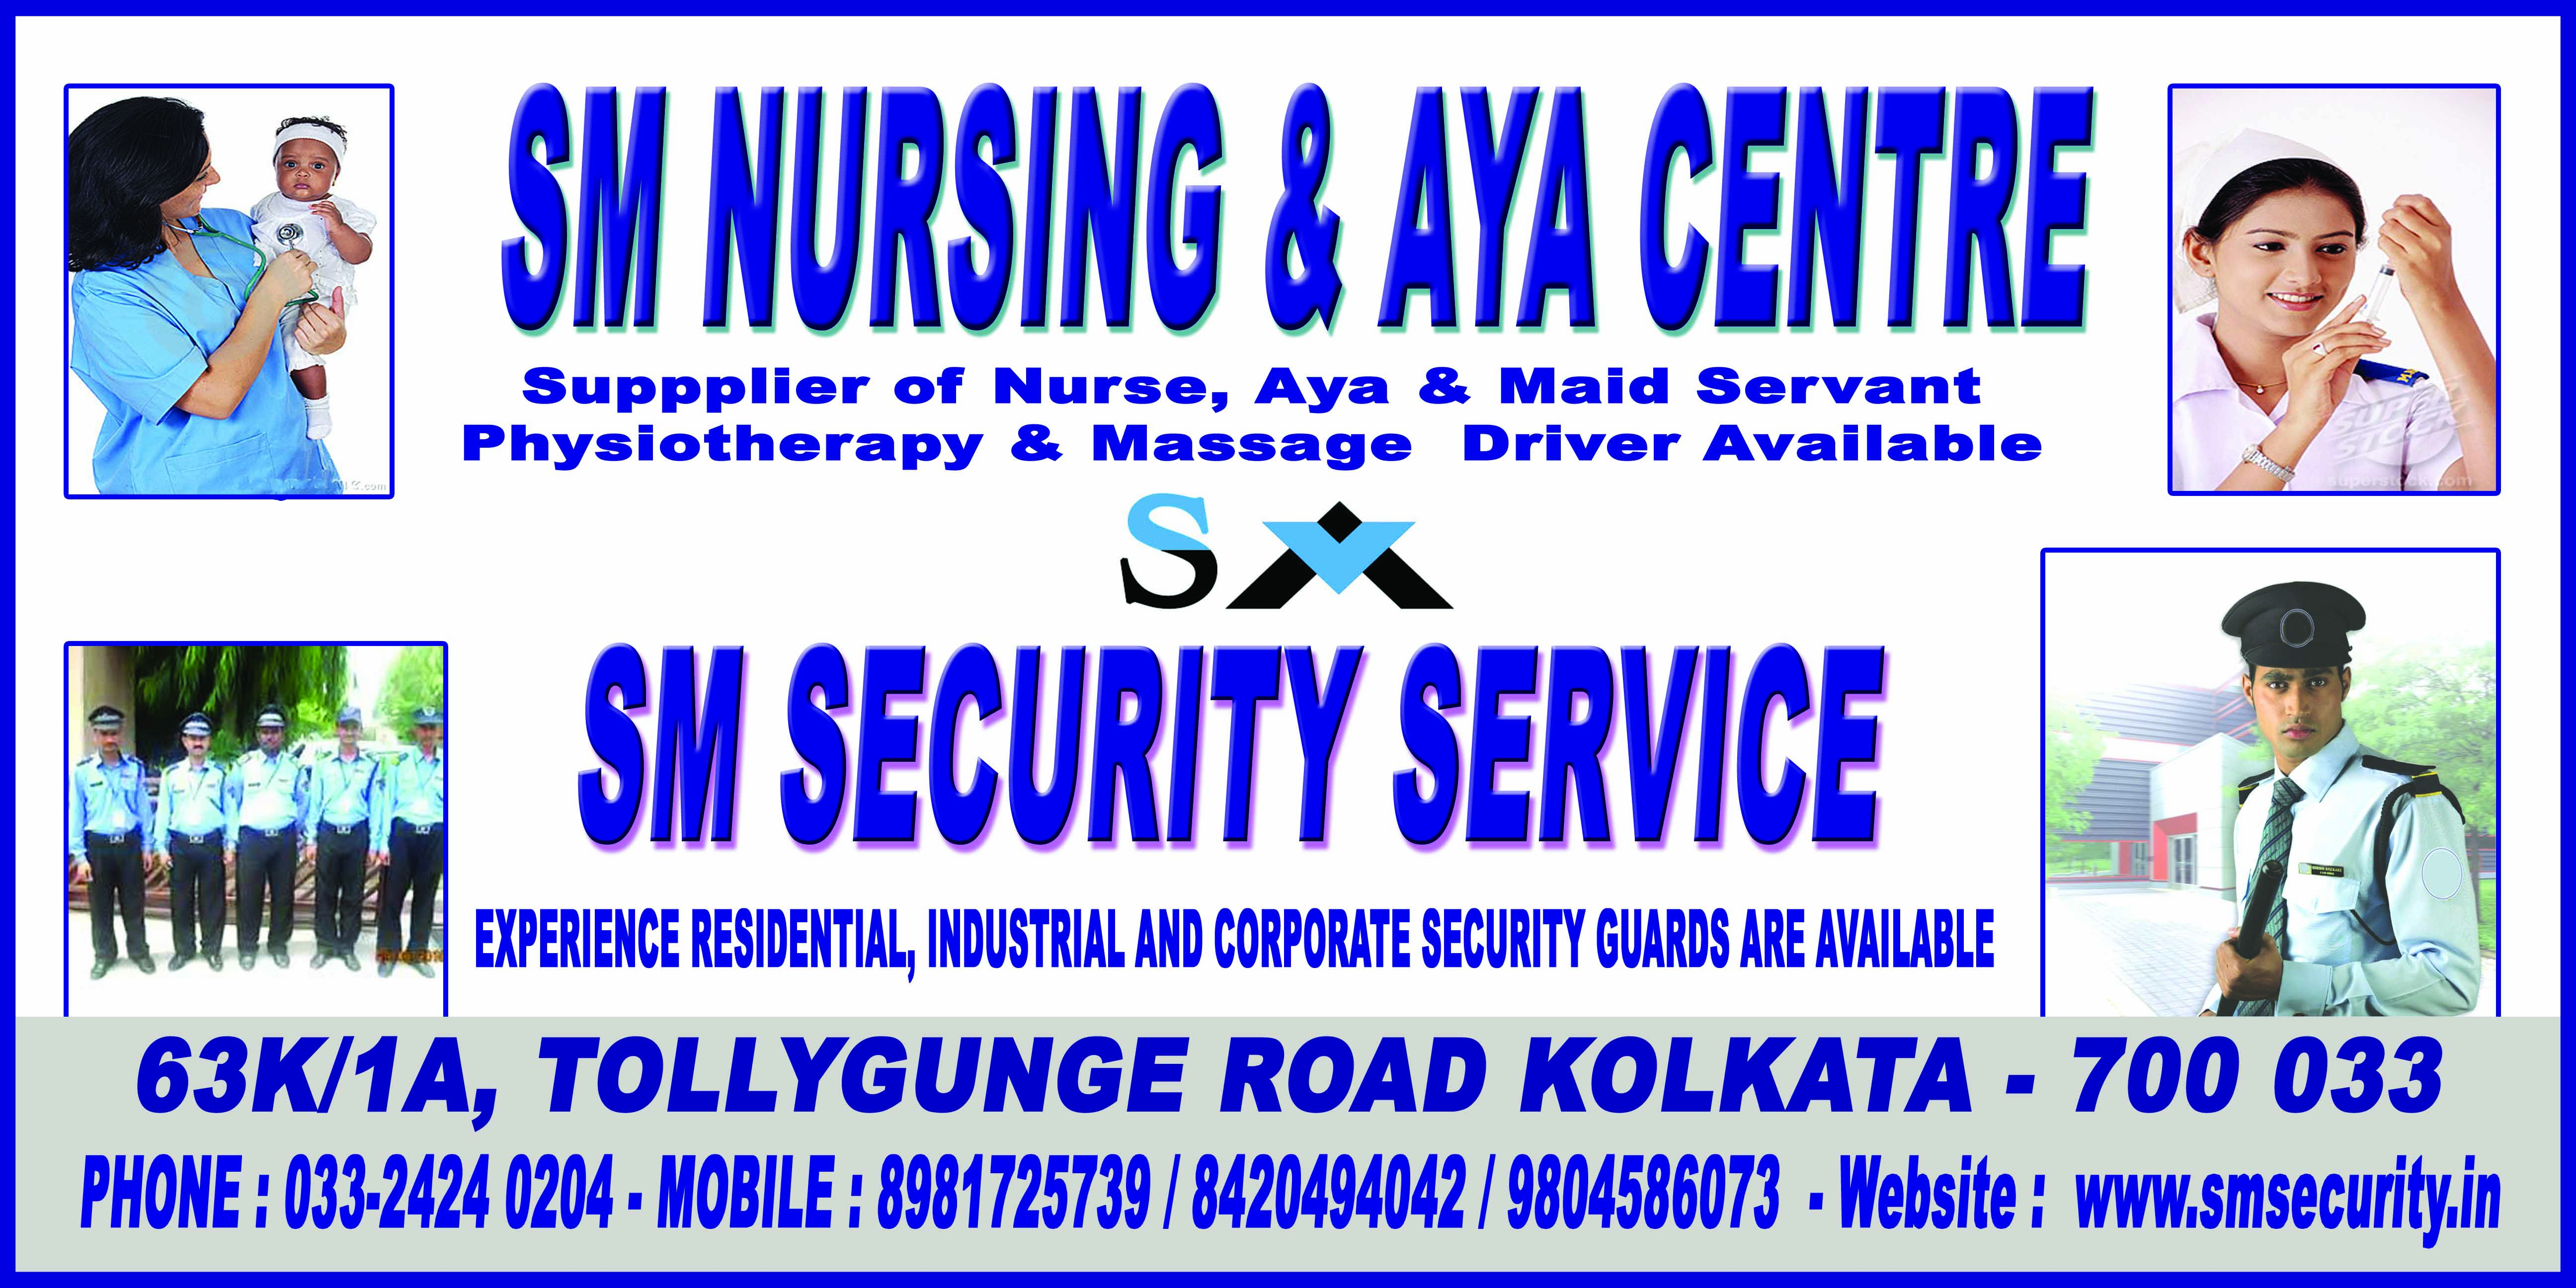 S.M. SECURITY AND NURSING CENTRE